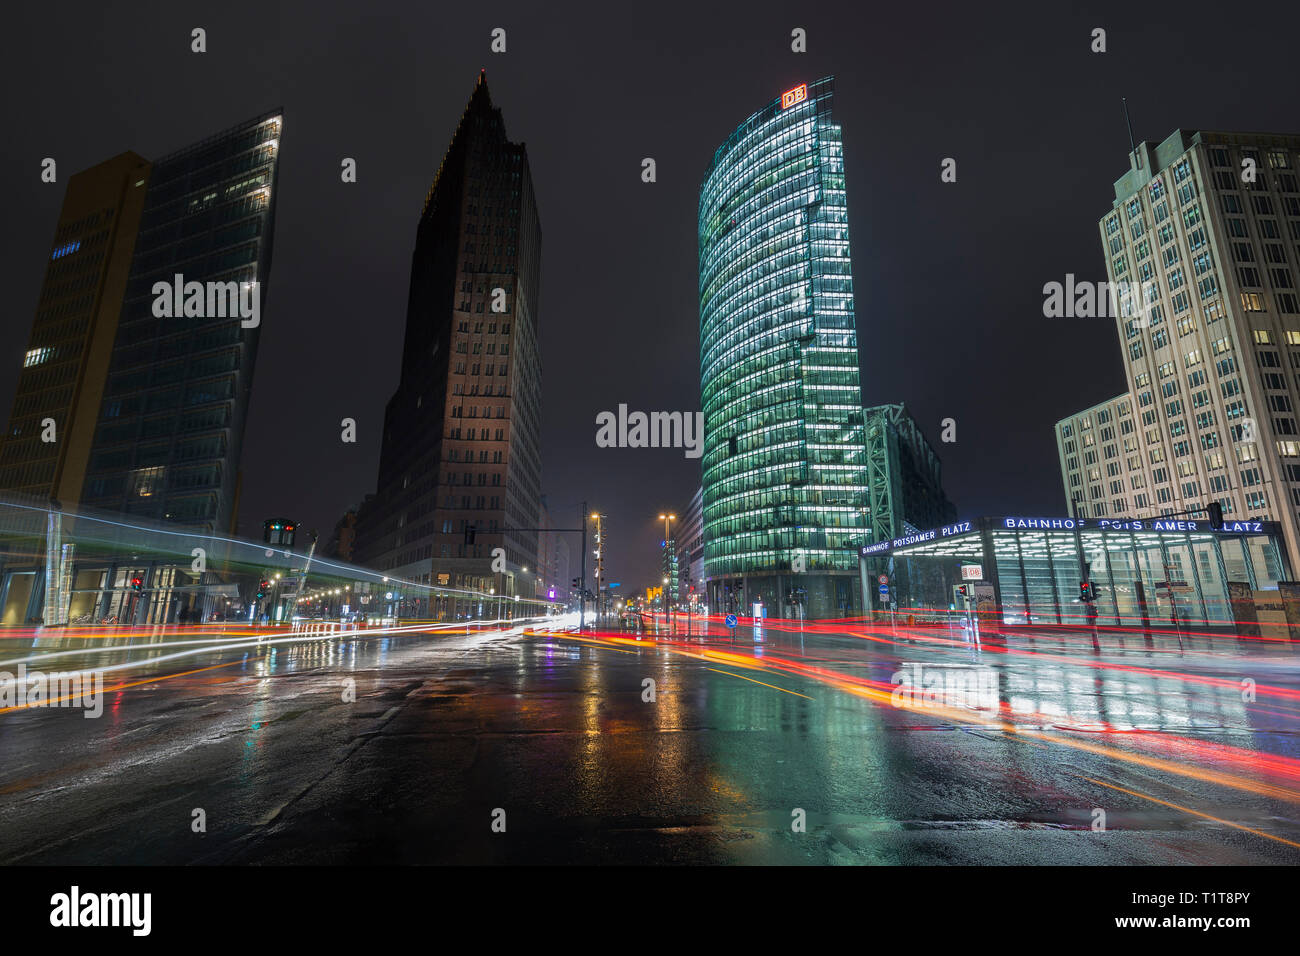 Lit modern high-rise buildings, cars' light trails, wet roads and entrance to train station at Potsdamer Platz in downtown Berlin, Germany, at dusk. Stock Photo